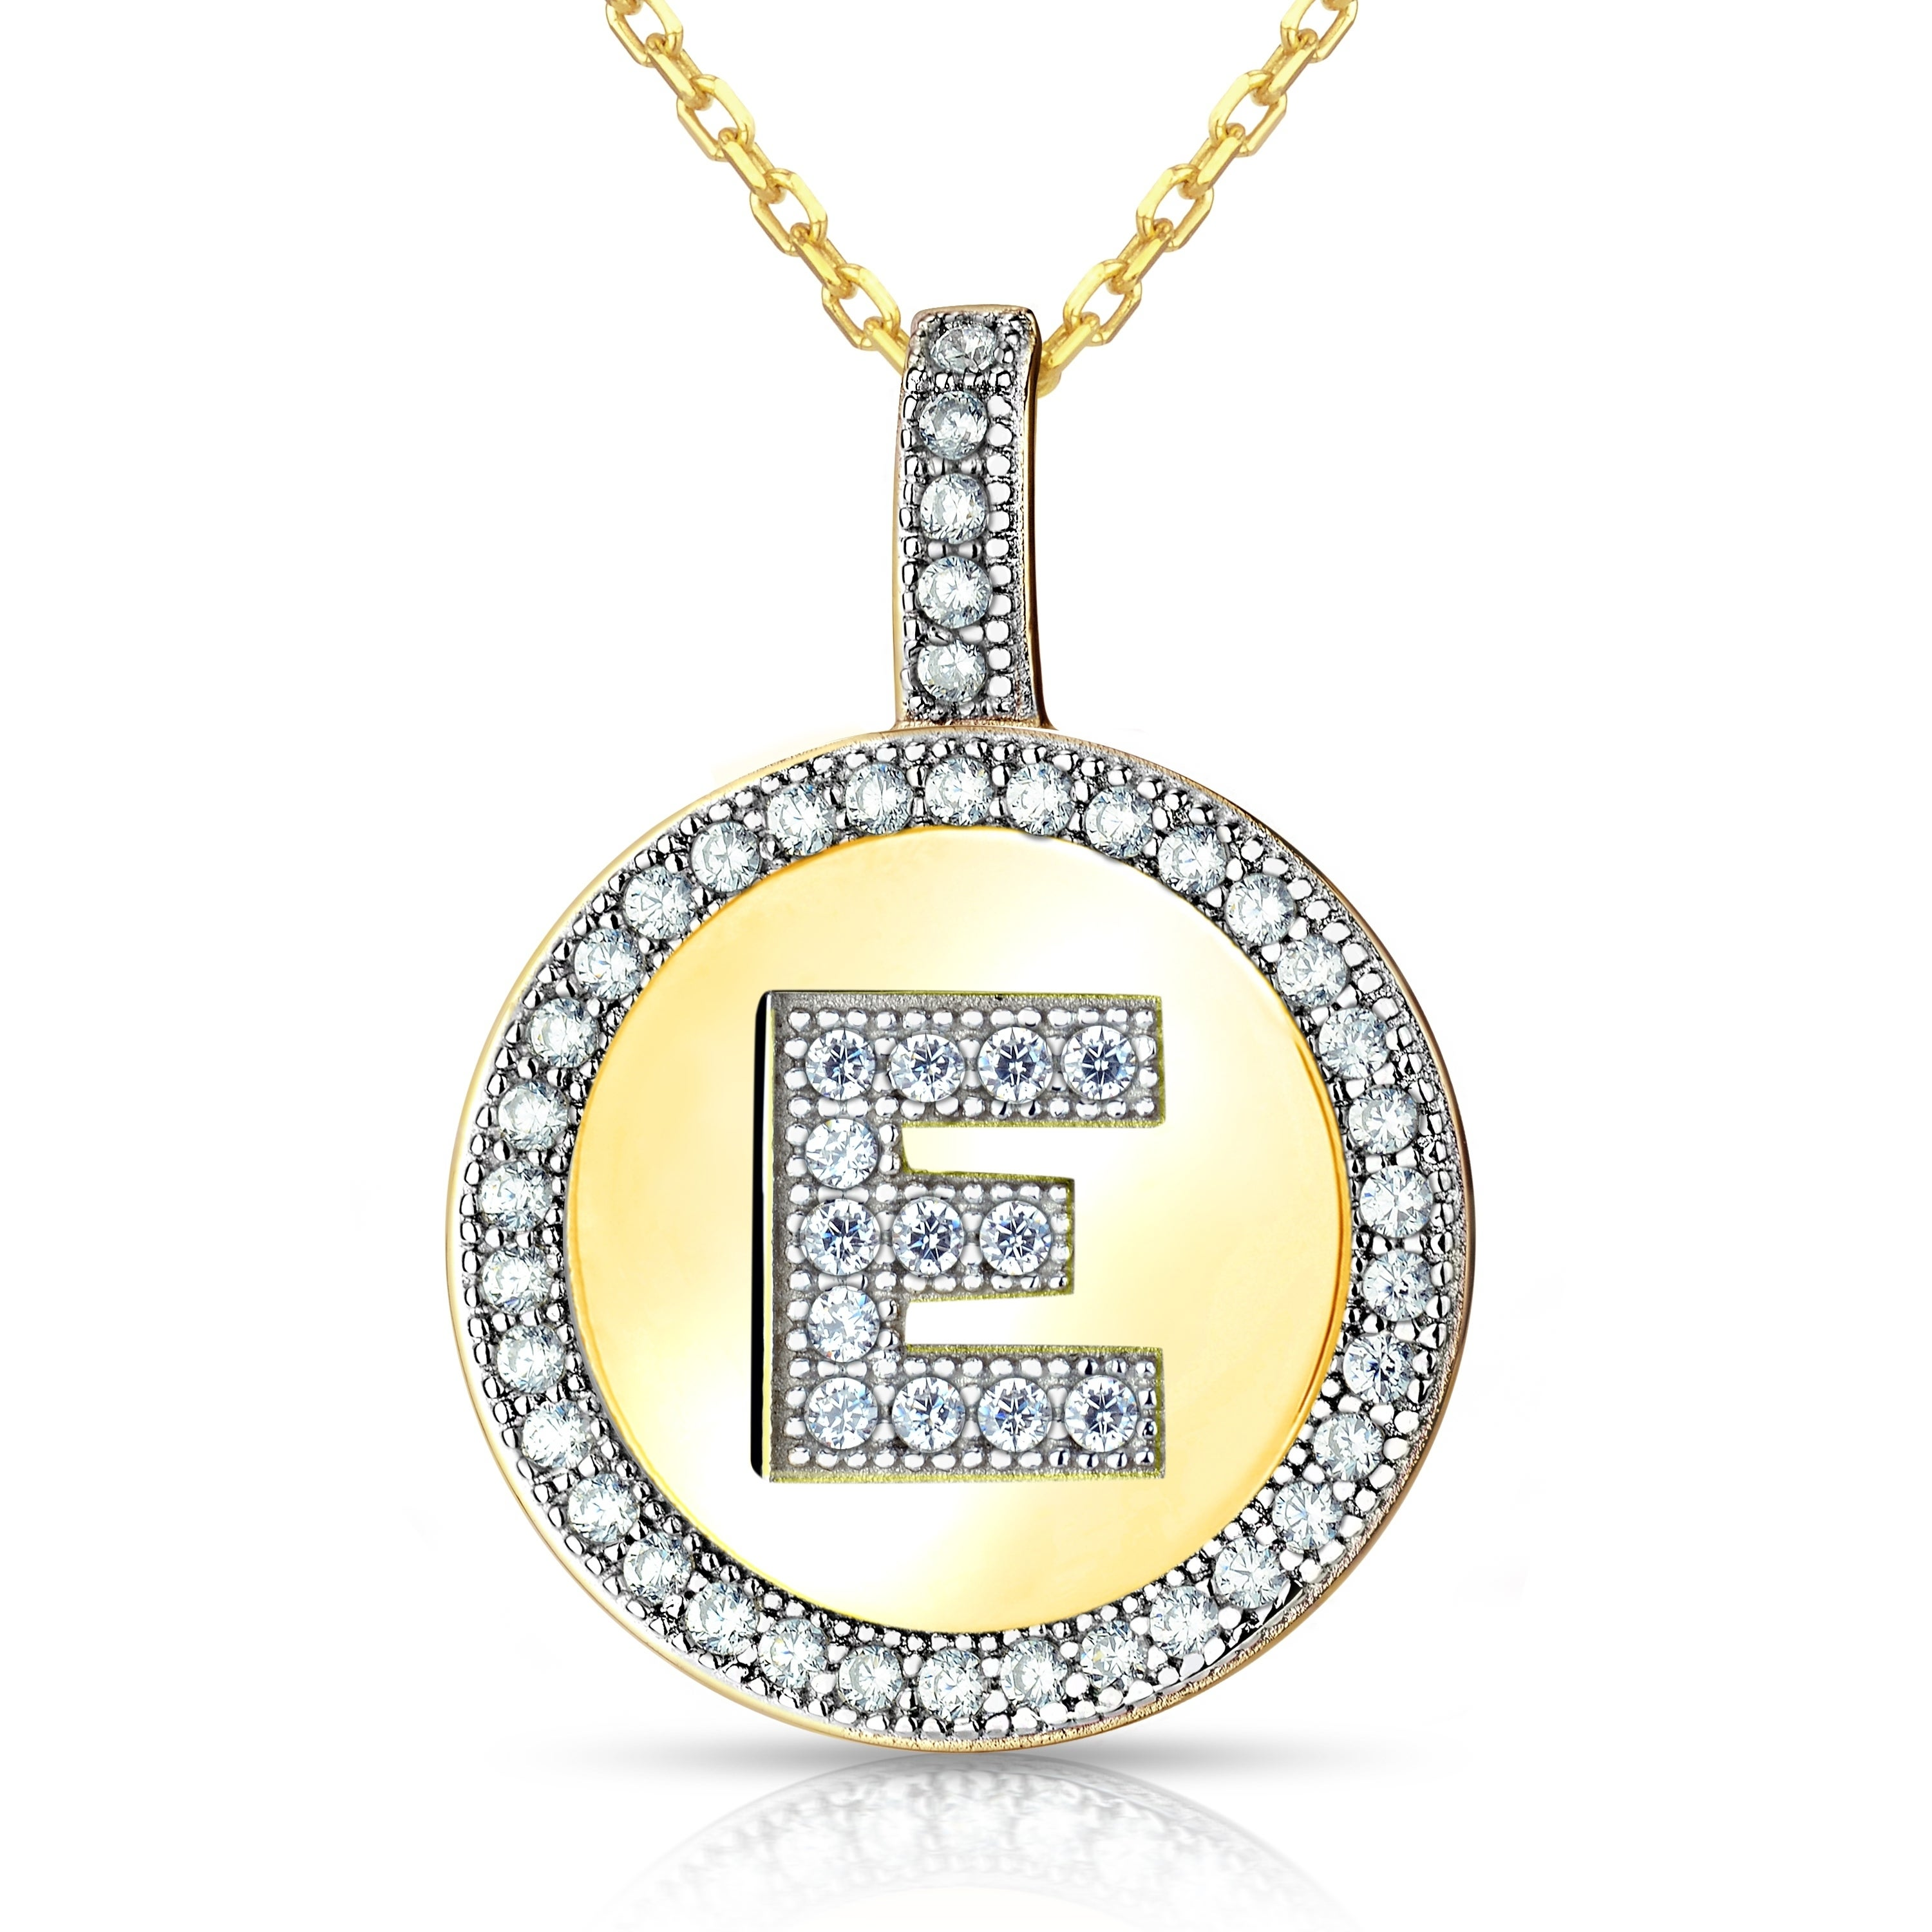 Shop la preciosa sterling silver or gold plated micro pave cubic shop la preciosa sterling silver or gold plated micro pave cubic zirconia initial circle pendant necklace on sale free shipping on orders over 45 mozeypictures Gallery